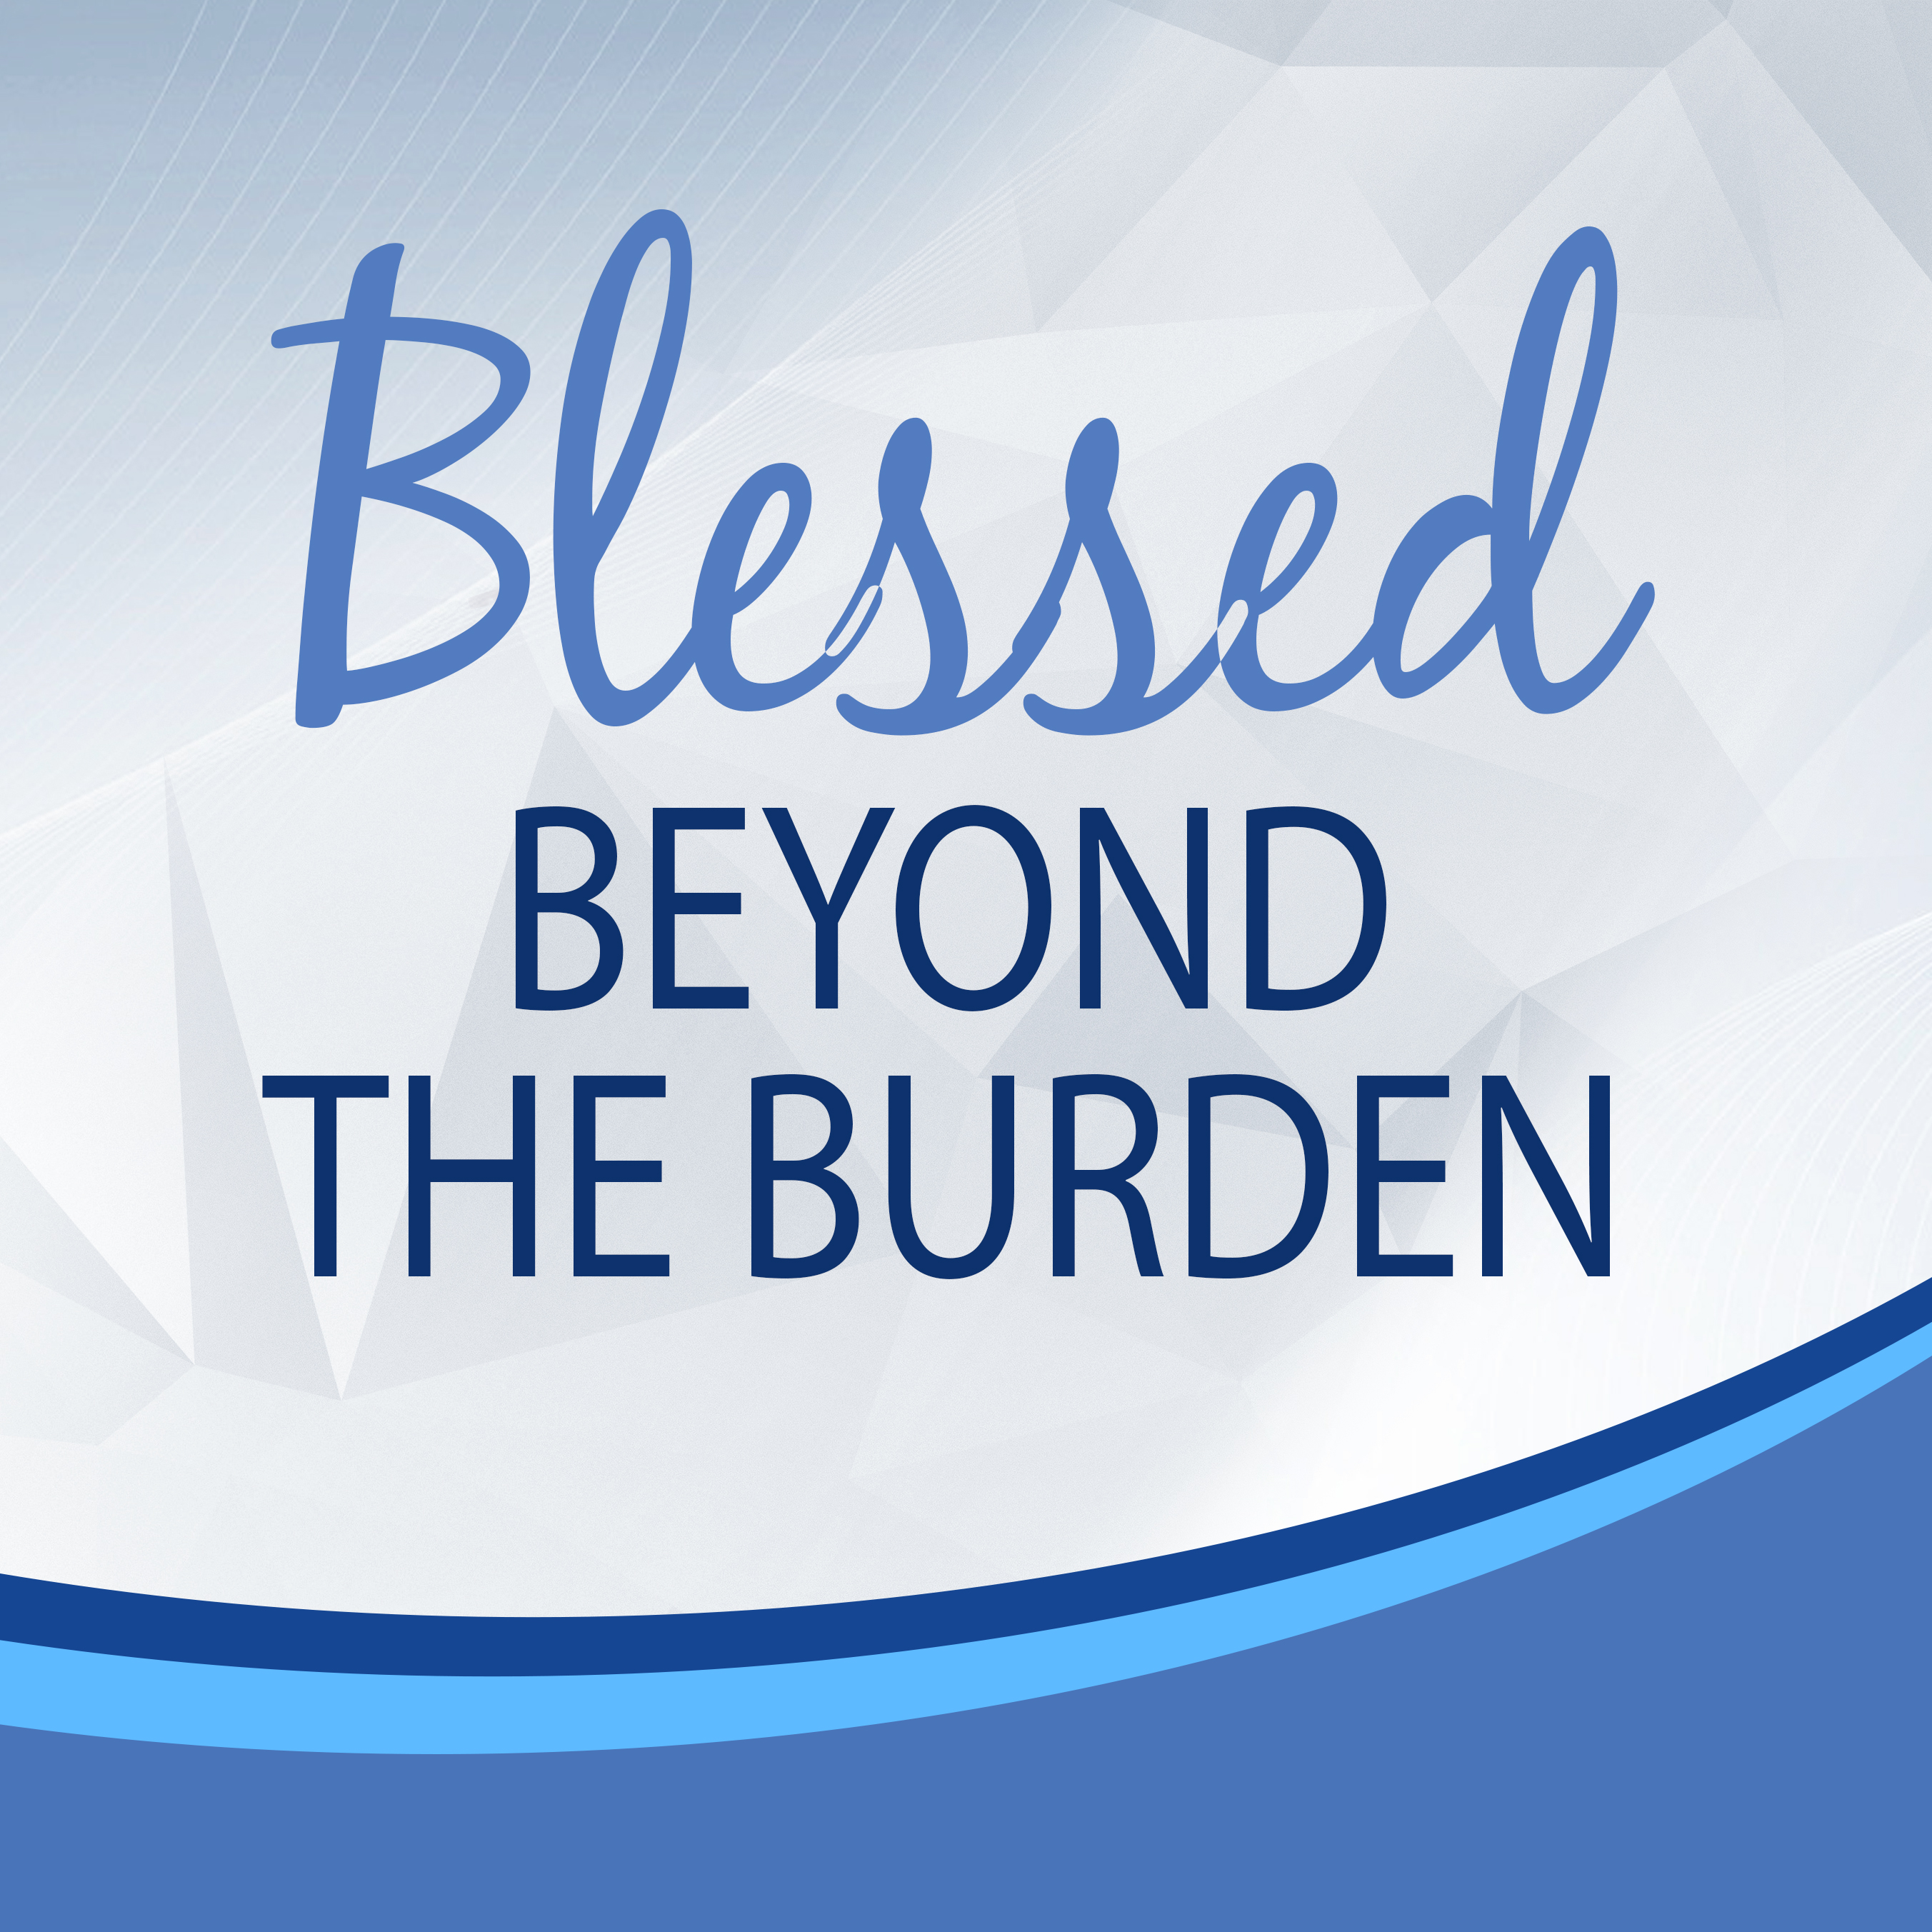 Blessed beyond the burden